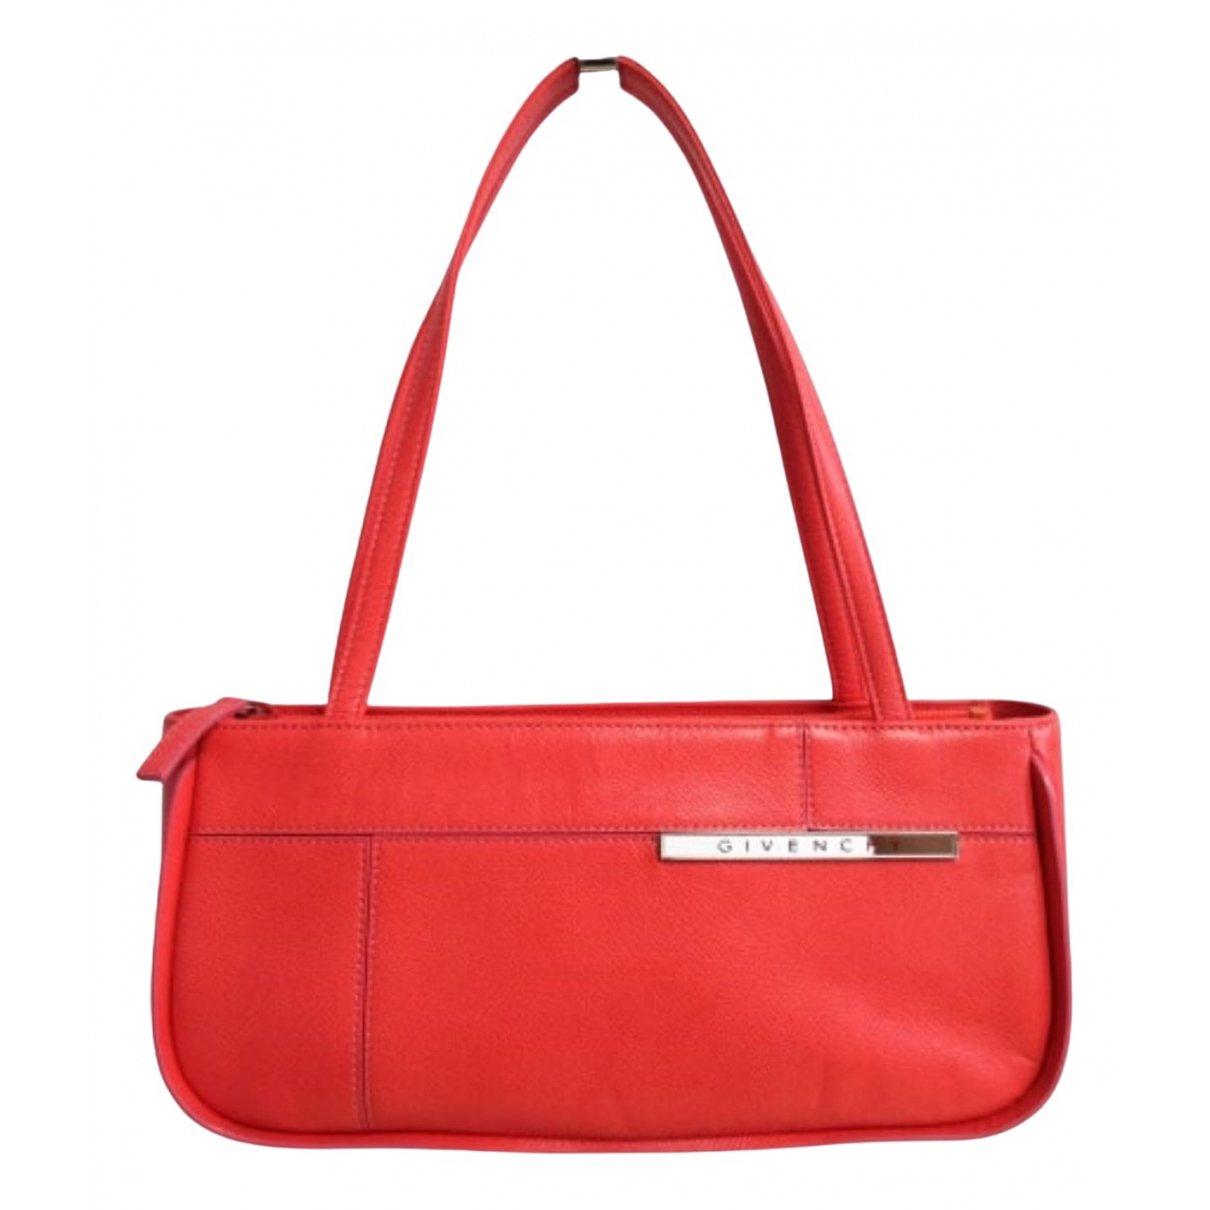 Givenchy \N Pink Leather handbag for Women \N